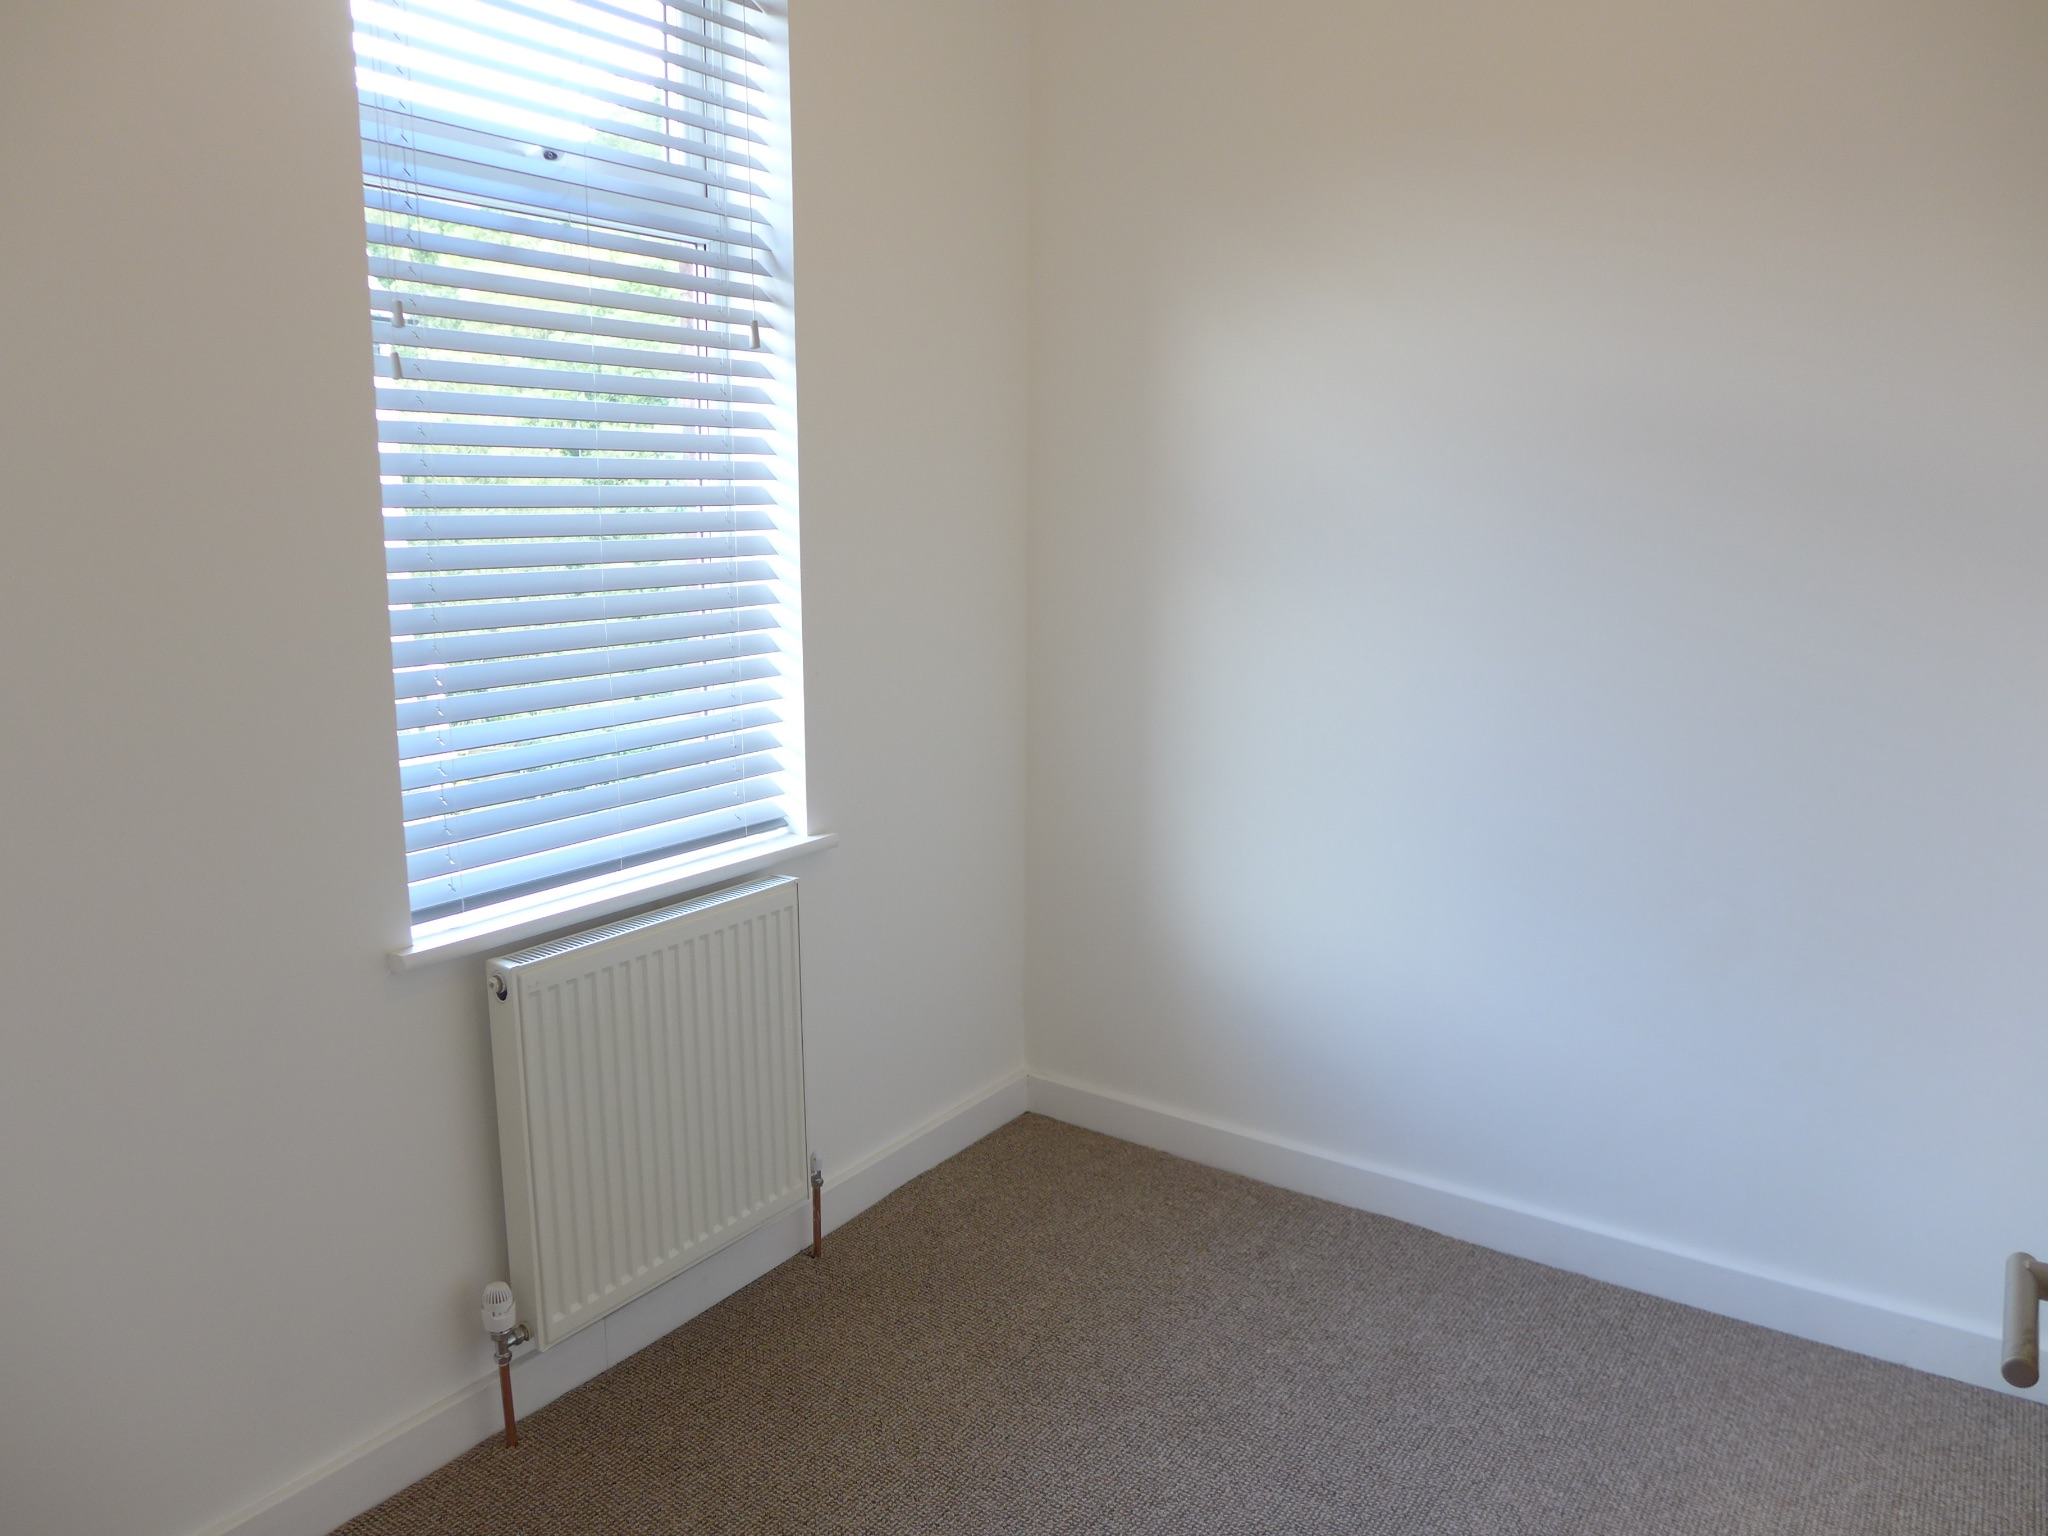 3 bedroom mid terraced house For Sale in Todmorden - Photograph 12.